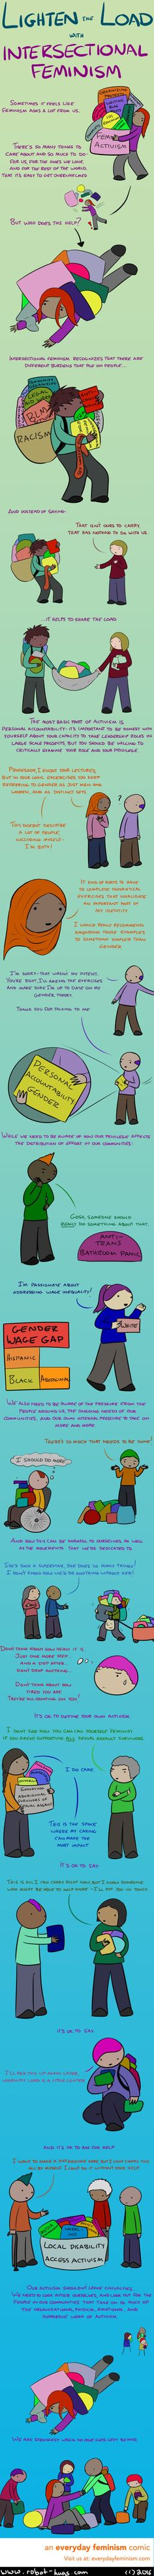 Carrying Feminism I LOVE THIS ♥️ The idea of sharing the load reminds me a lot of Audre Lorde. :)